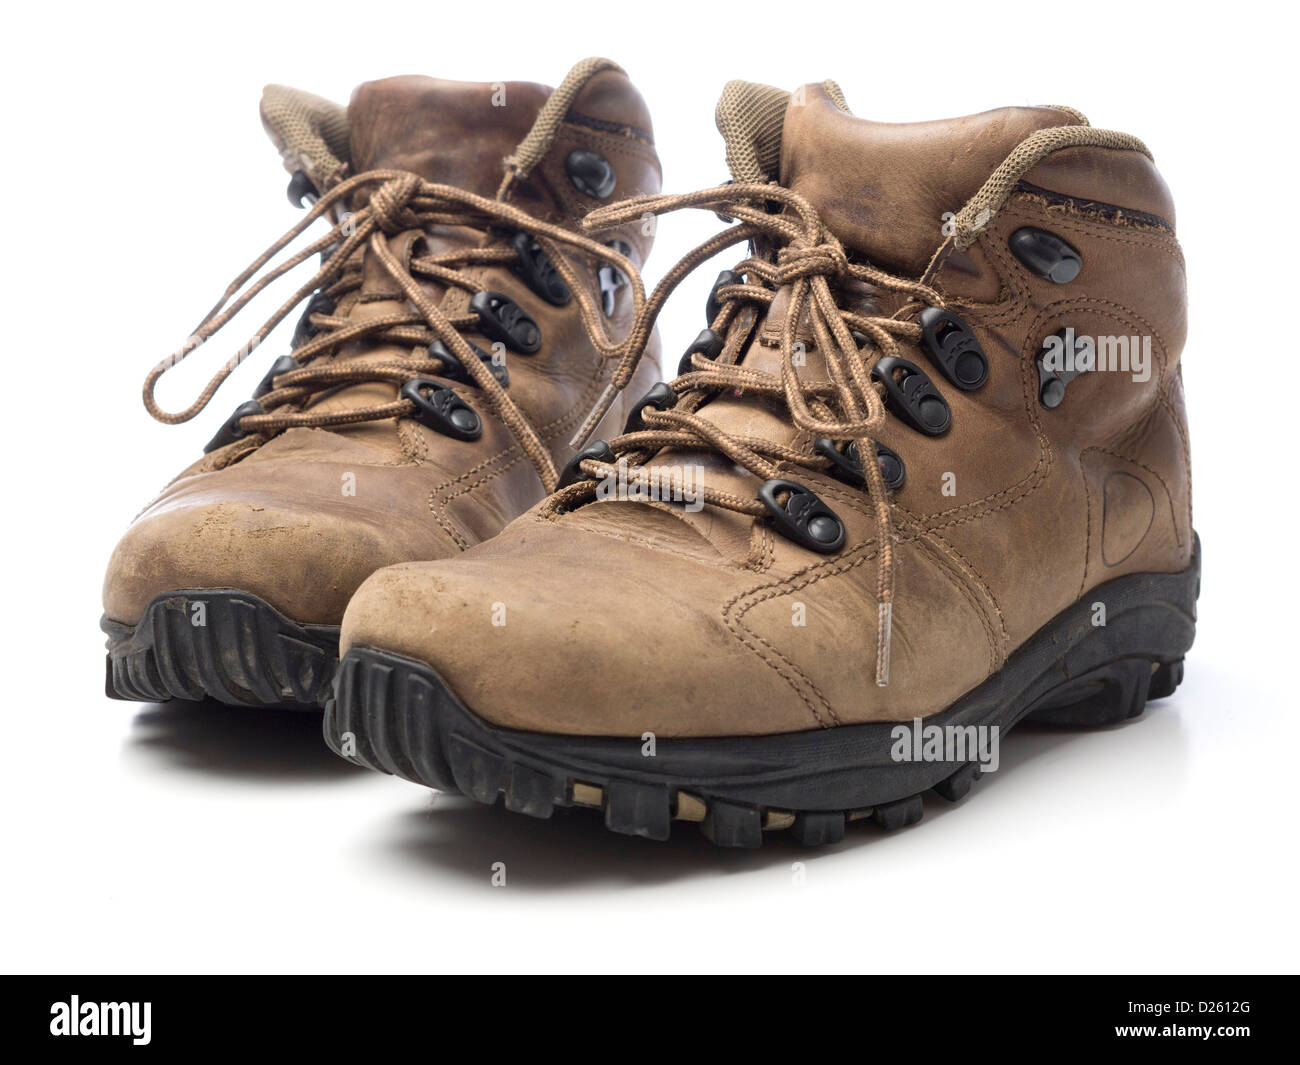 1a5aaeb605b Walking Boots Cut Out Stock Photos & Walking Boots Cut Out Stock ...